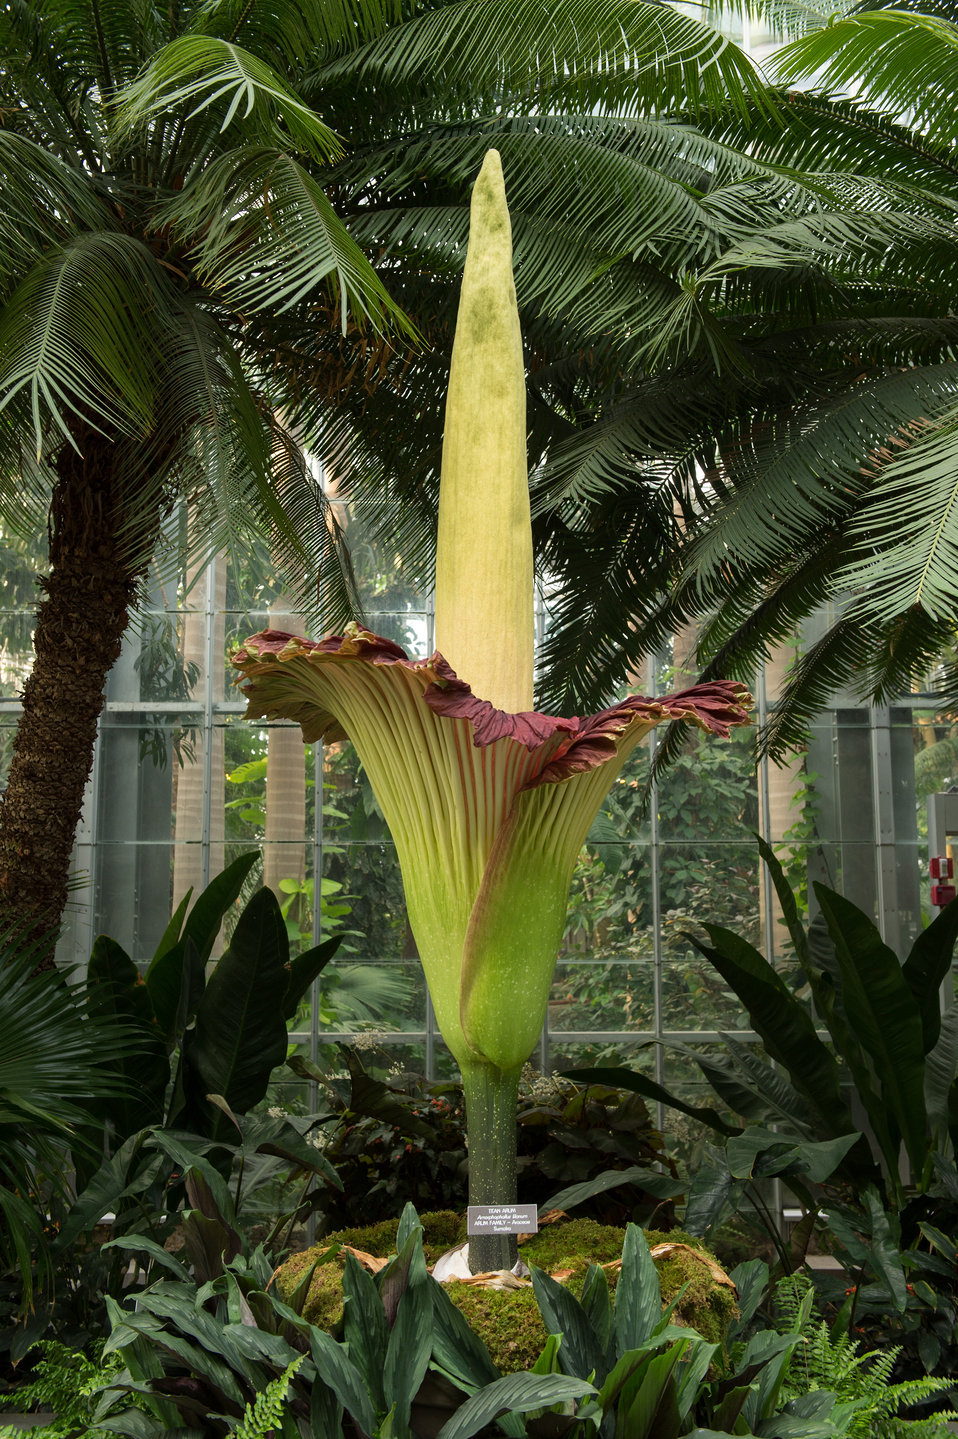 The titan arum in bloom at the Botanic Garden